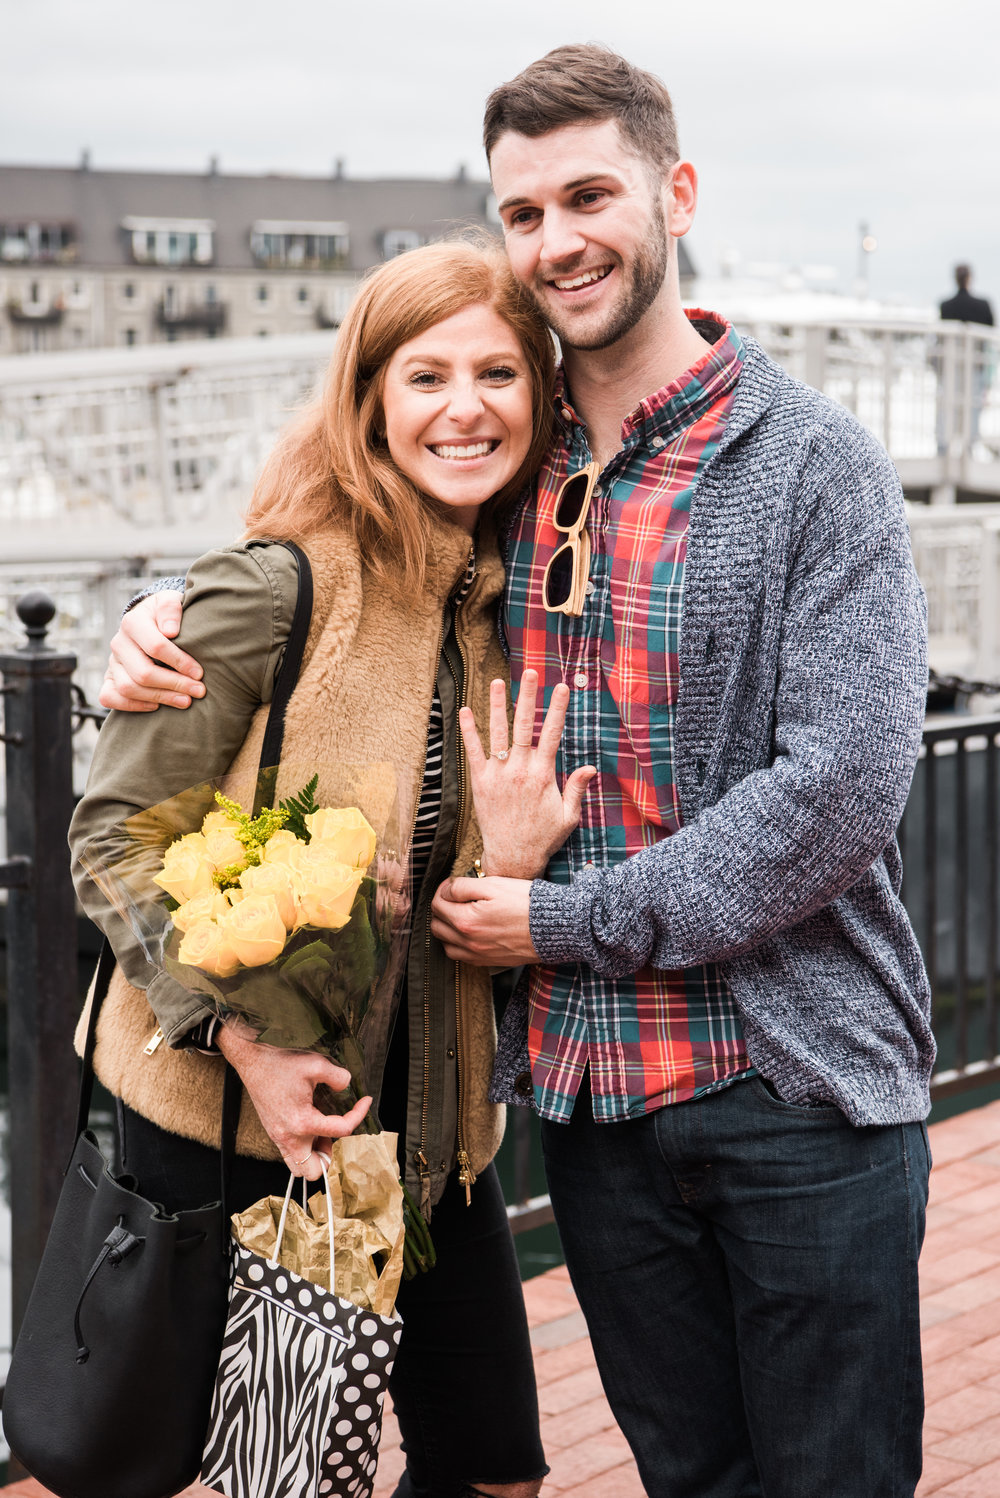 Angie and Brendan get engaged!